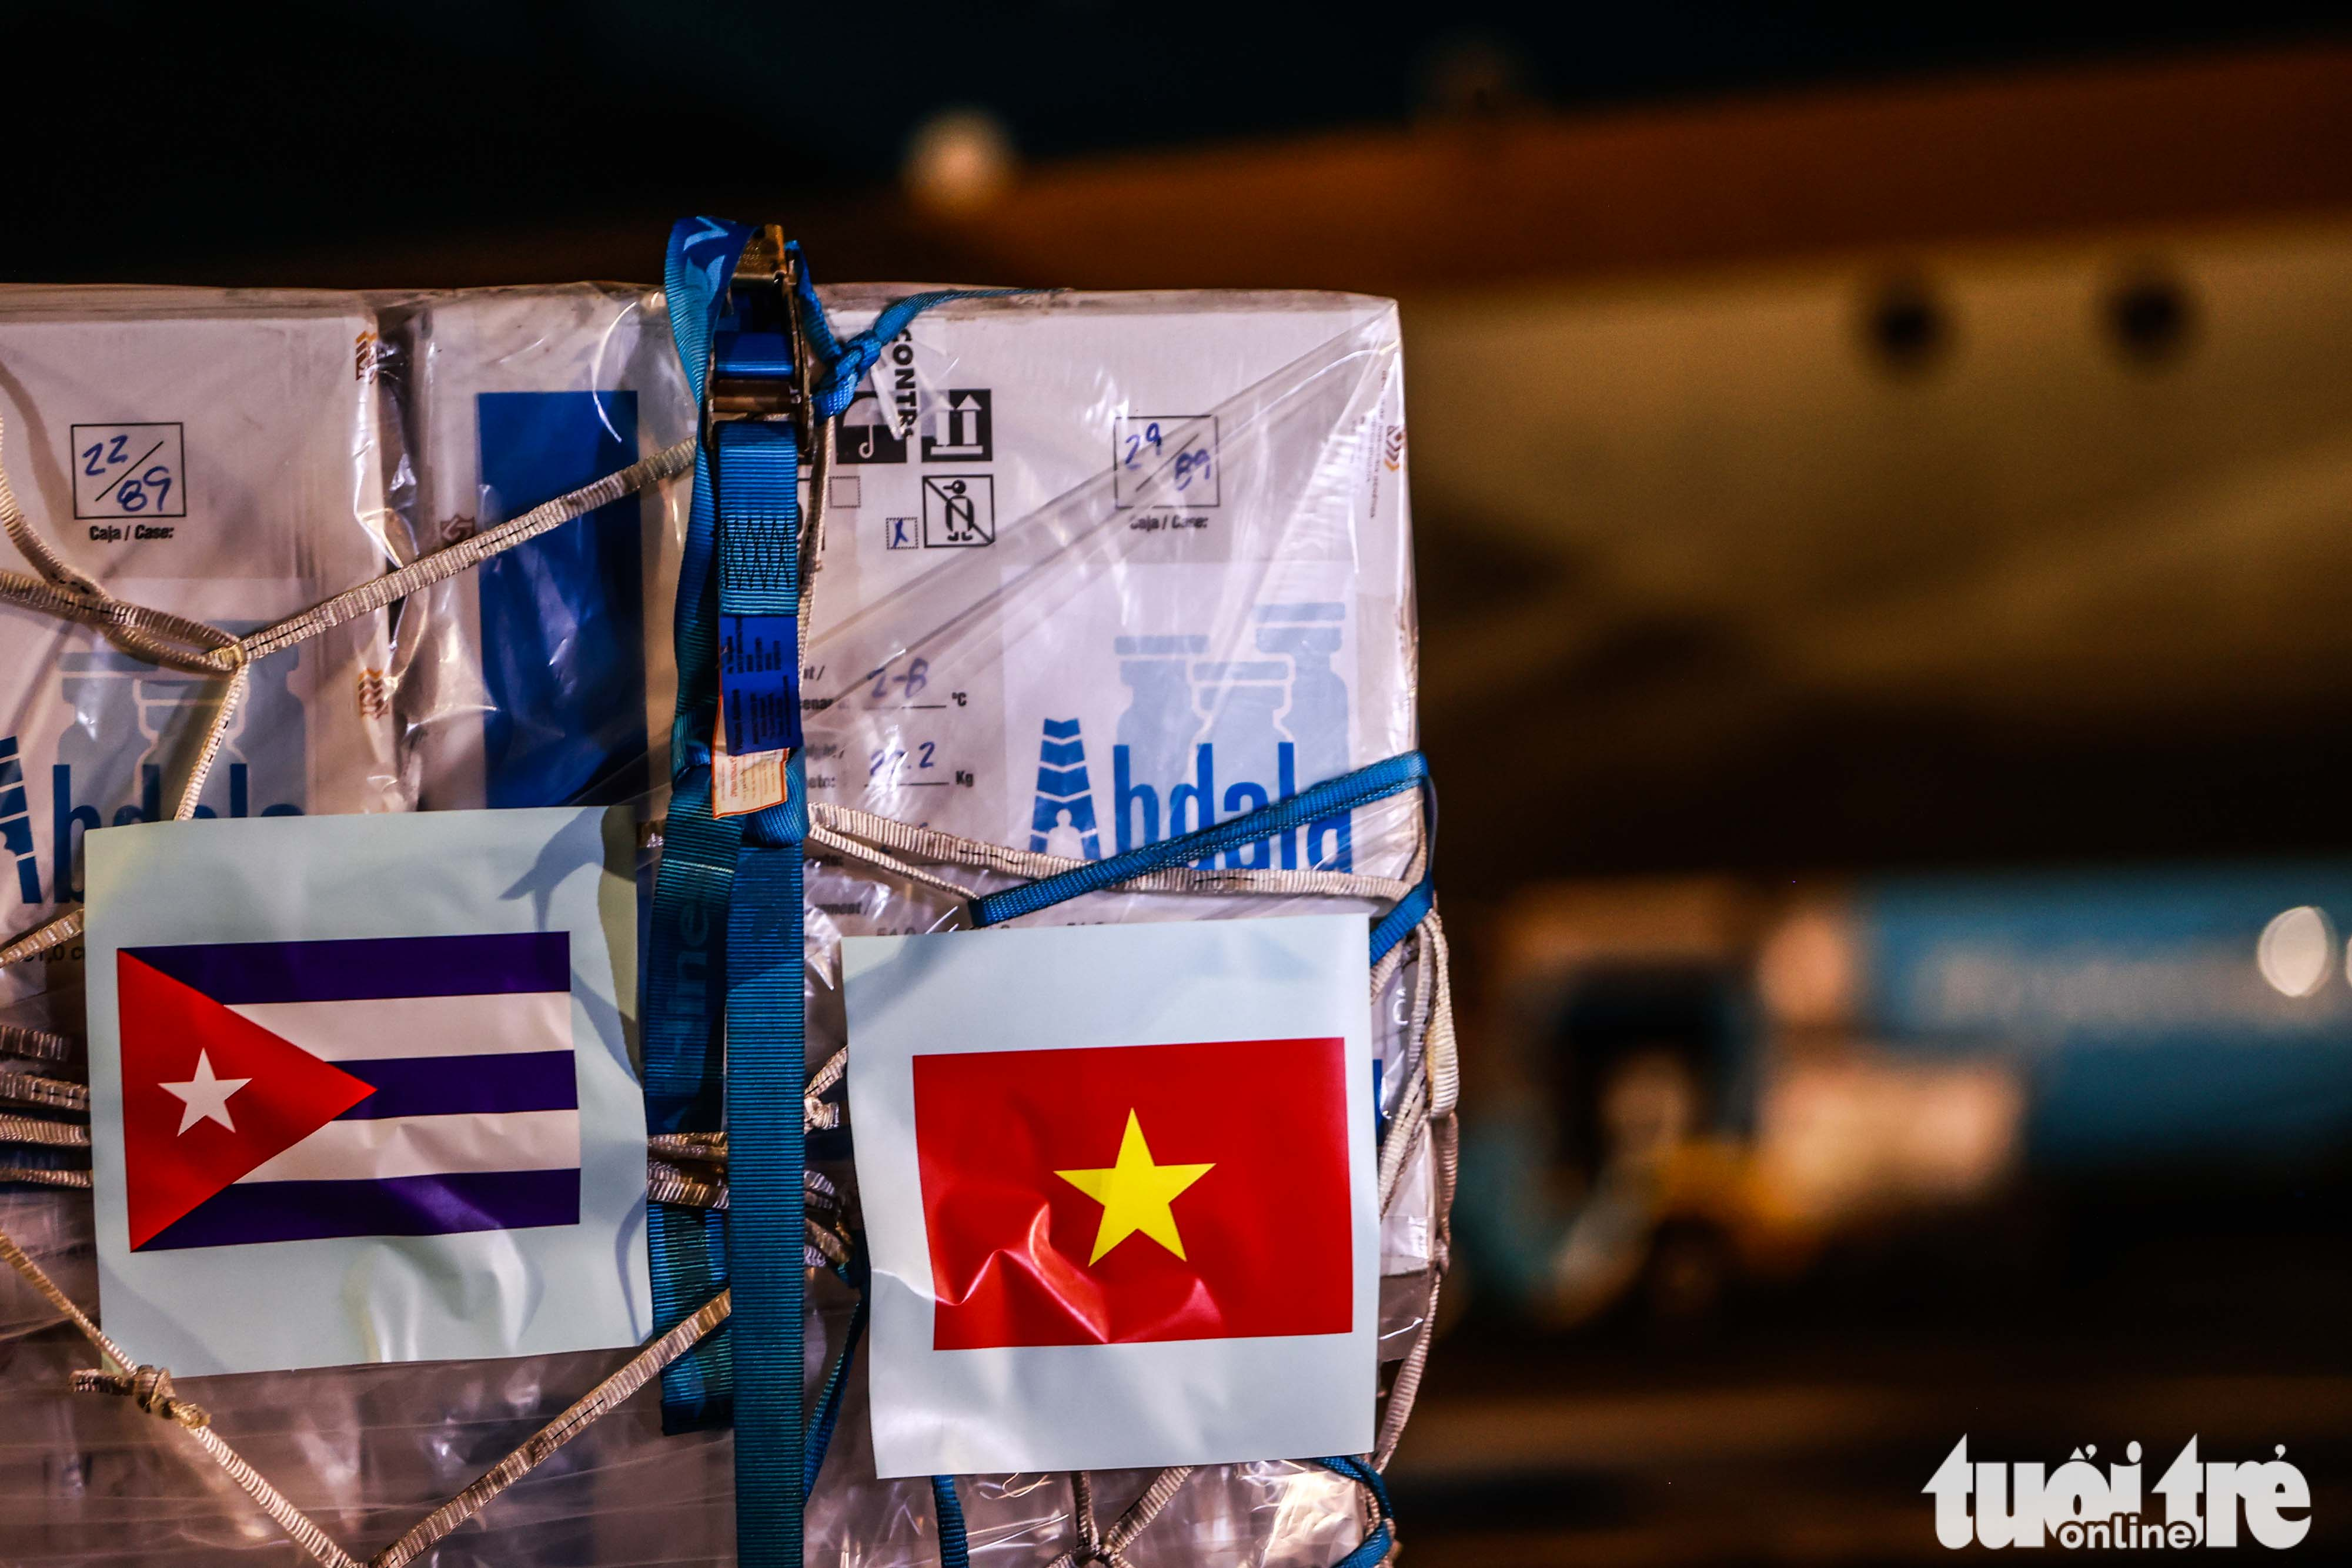 The batch of Abdala COVID-19 vaccine is pictured at Noi Bai International Airport in Hanoi, September 25, 2021. Photo: Nguyen Khanh / Tuoi Tre